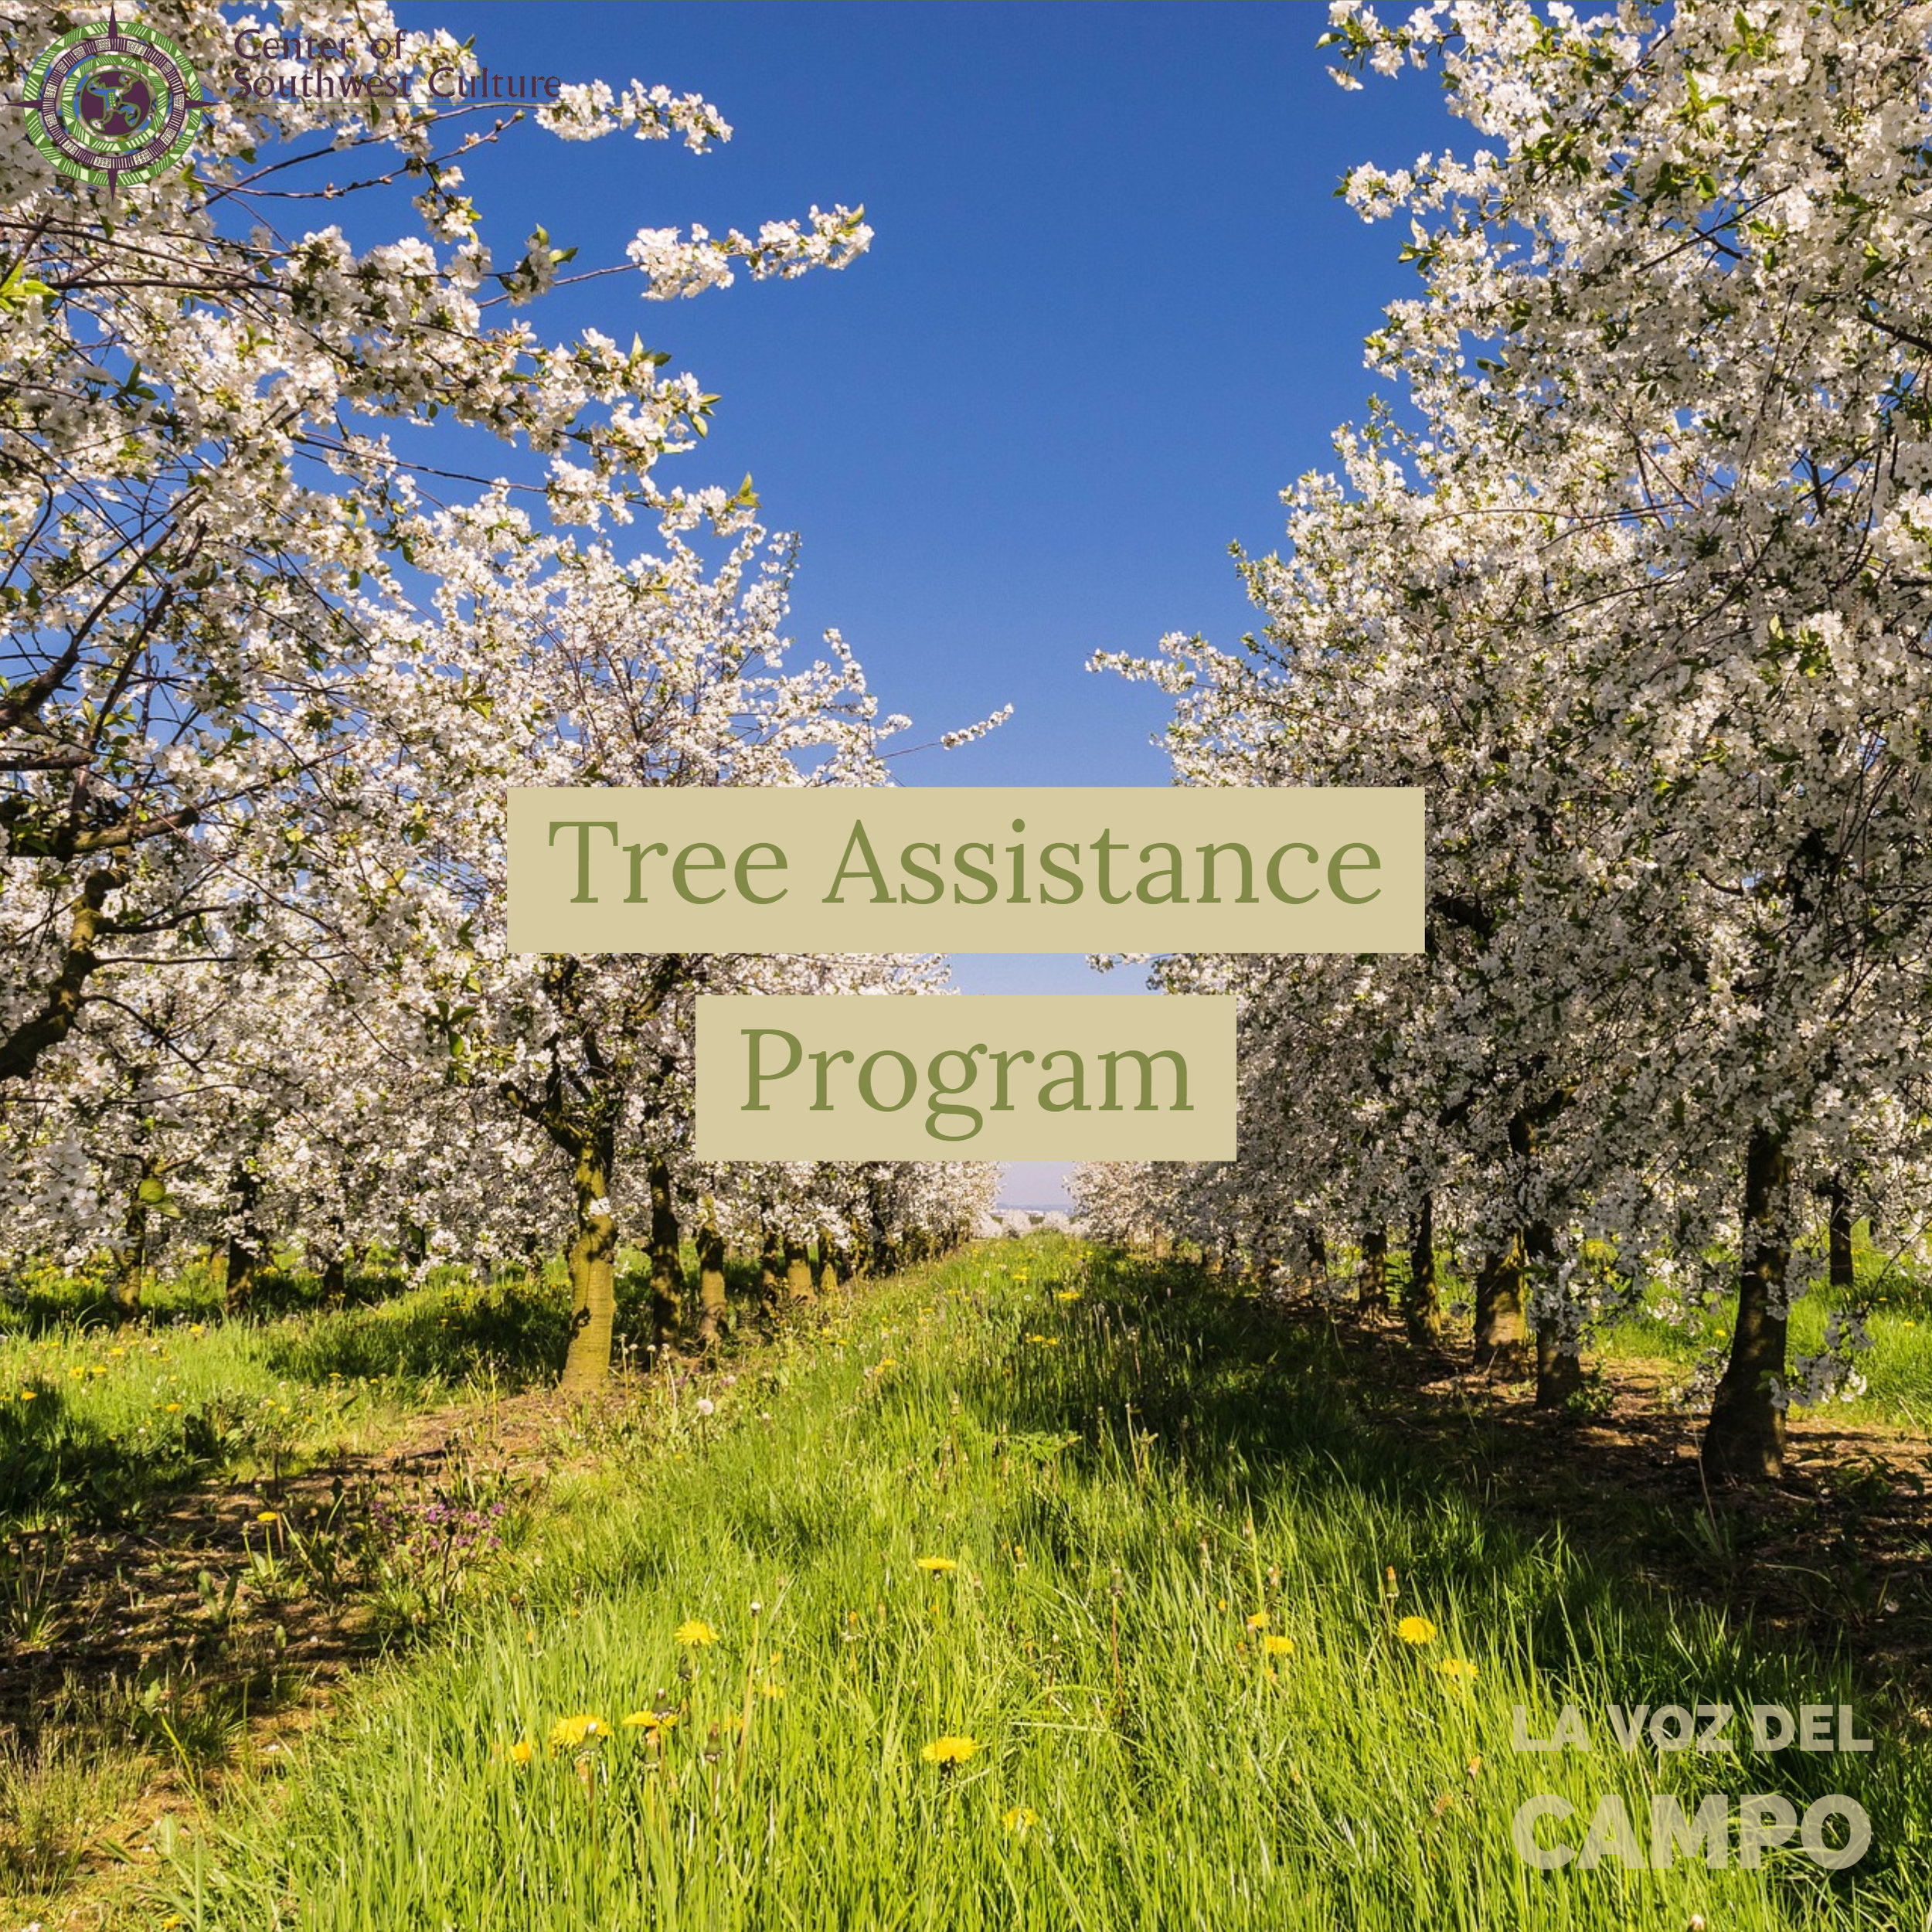 Tree Assistance Program - The tree assistance program provides financial assistance to eligible orchardists and nursery tree growers to replant or rehabilitate eligible trees, bushes, and vines lost by natural disasters. PDF information can be found here.